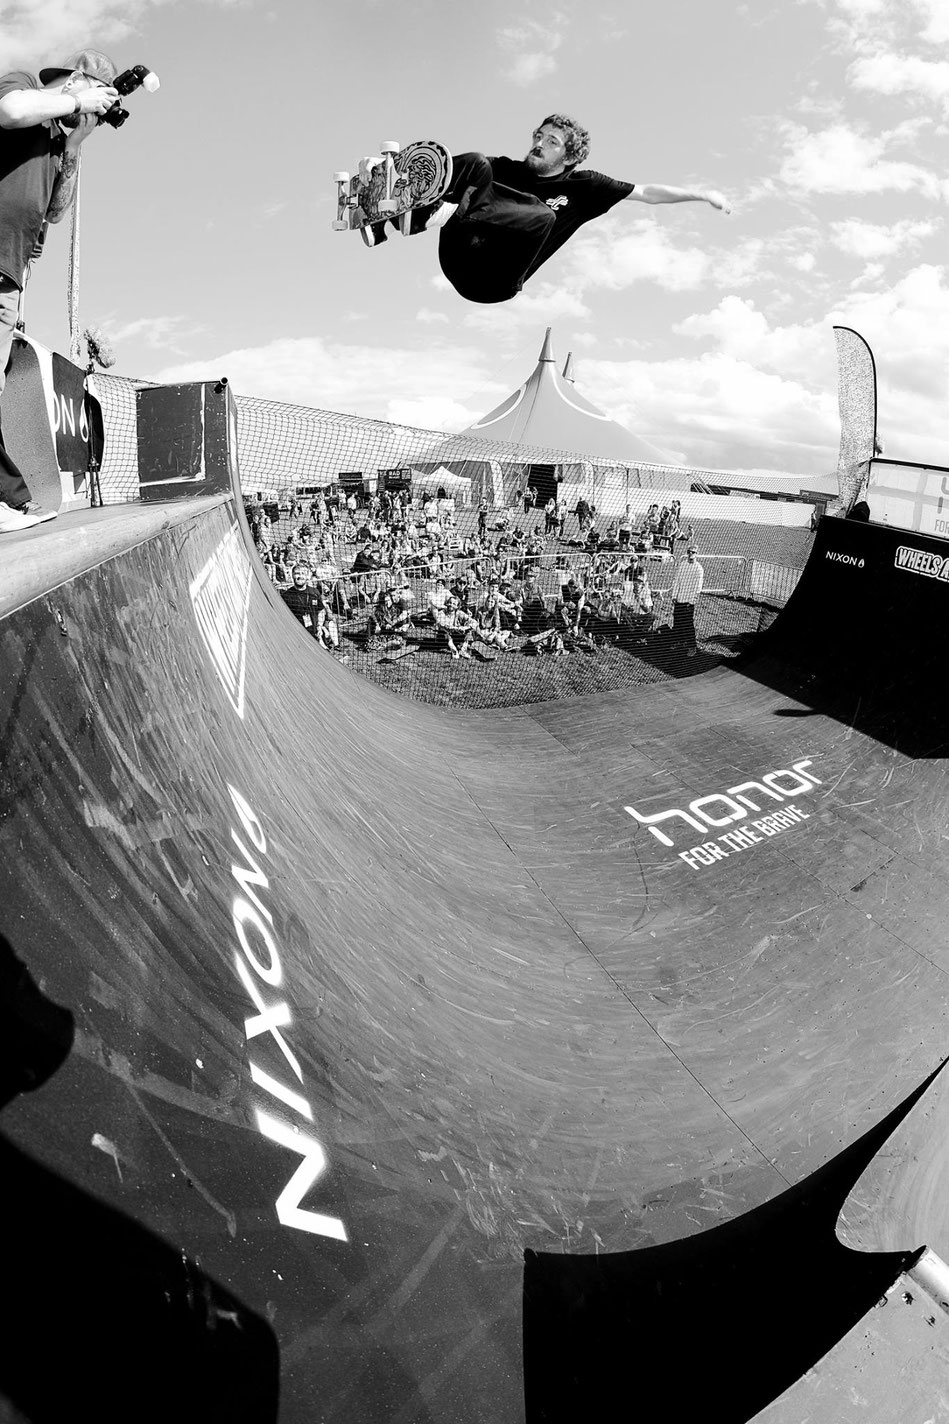 wheels and fins festival skateboard skate ramp photography joss bay broadstairs photo on broadstairs apartments accomodation inspiration blog